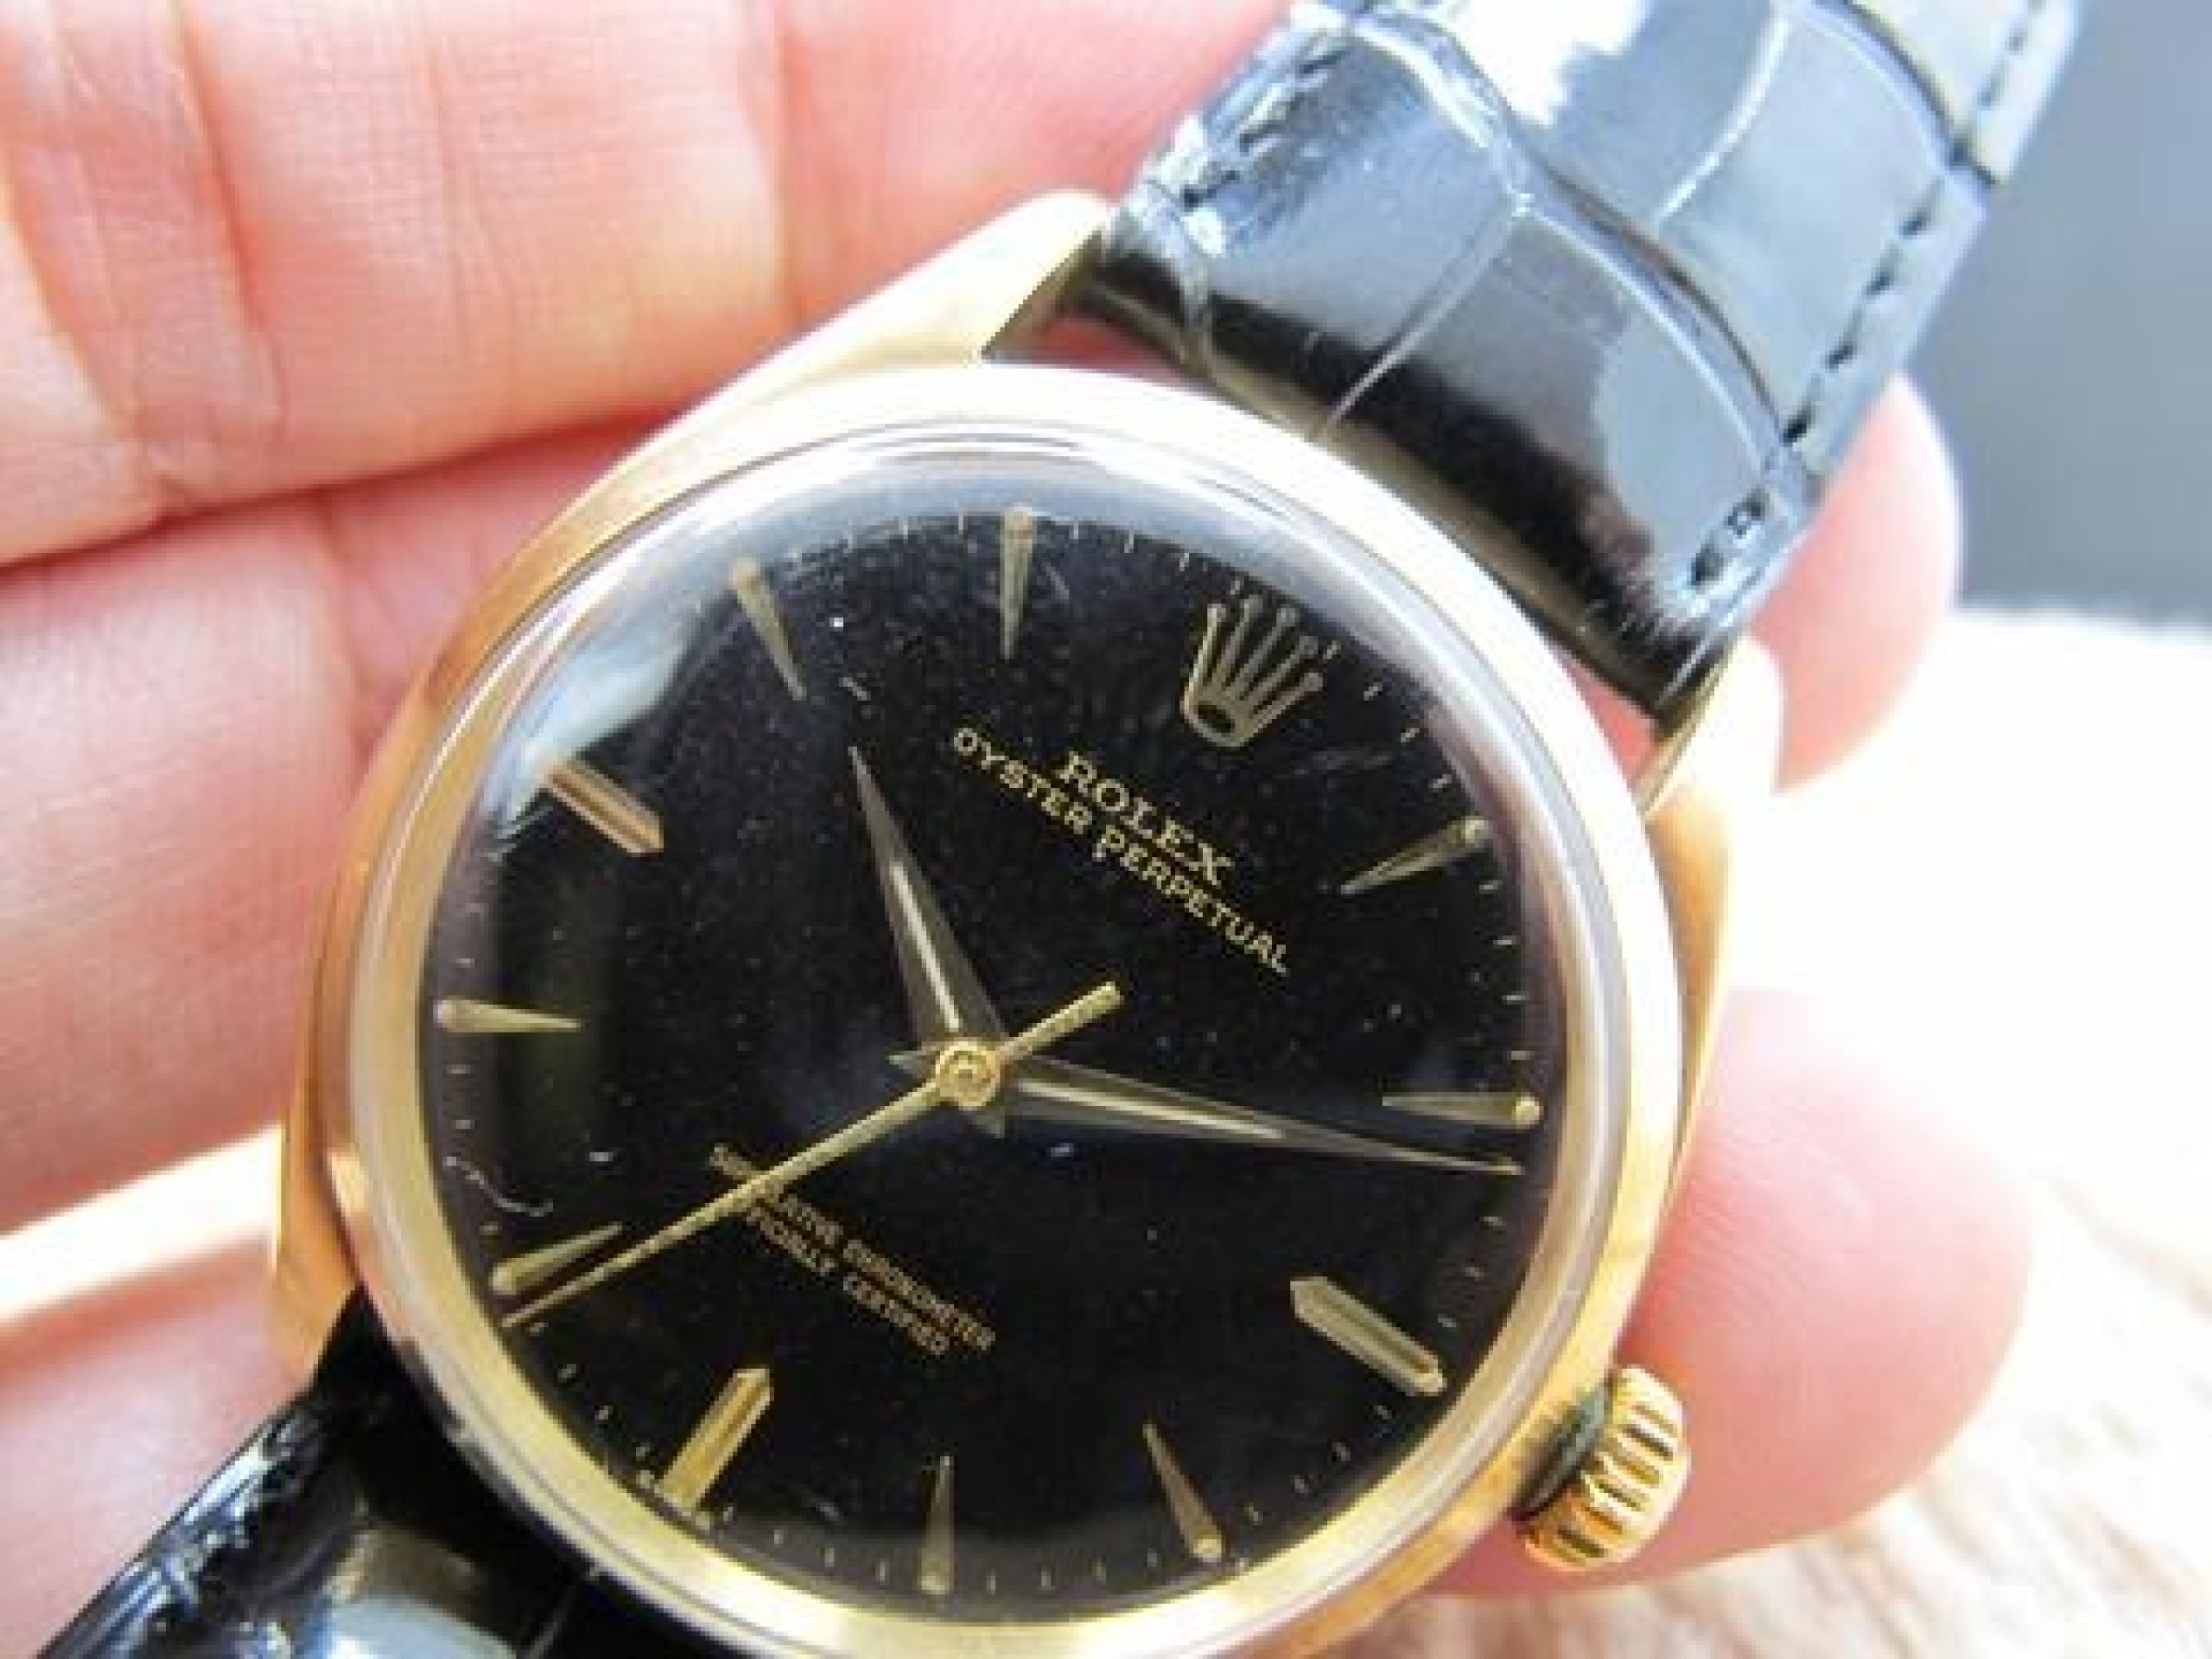 1959 ROLEX OYSTER PERPETUAL 1005 14K YELLOW GOLD GILT DIAL